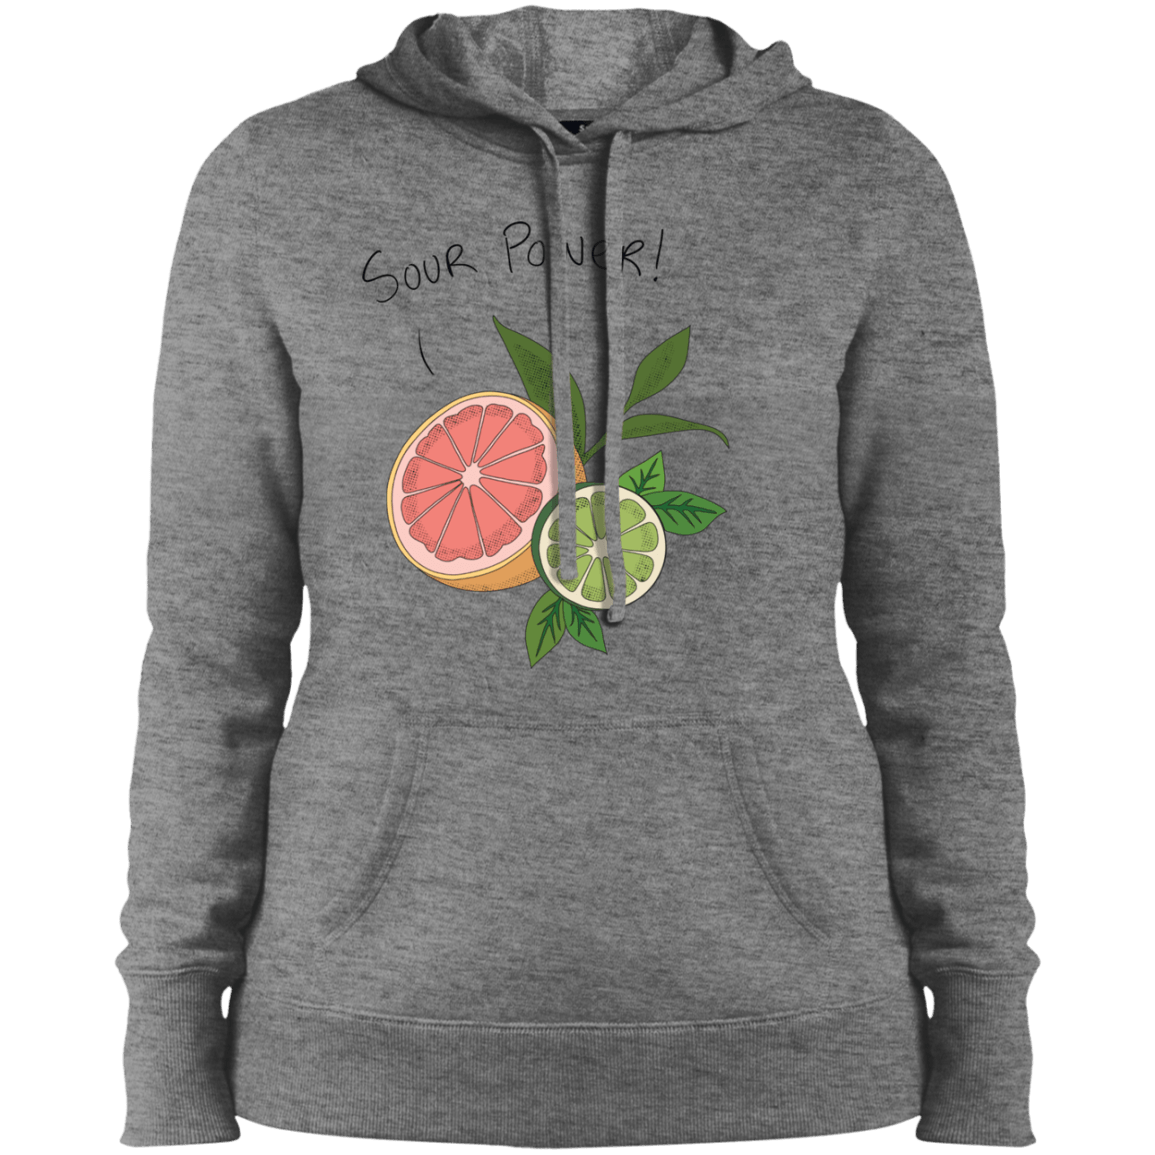 Sour Power! Pullover